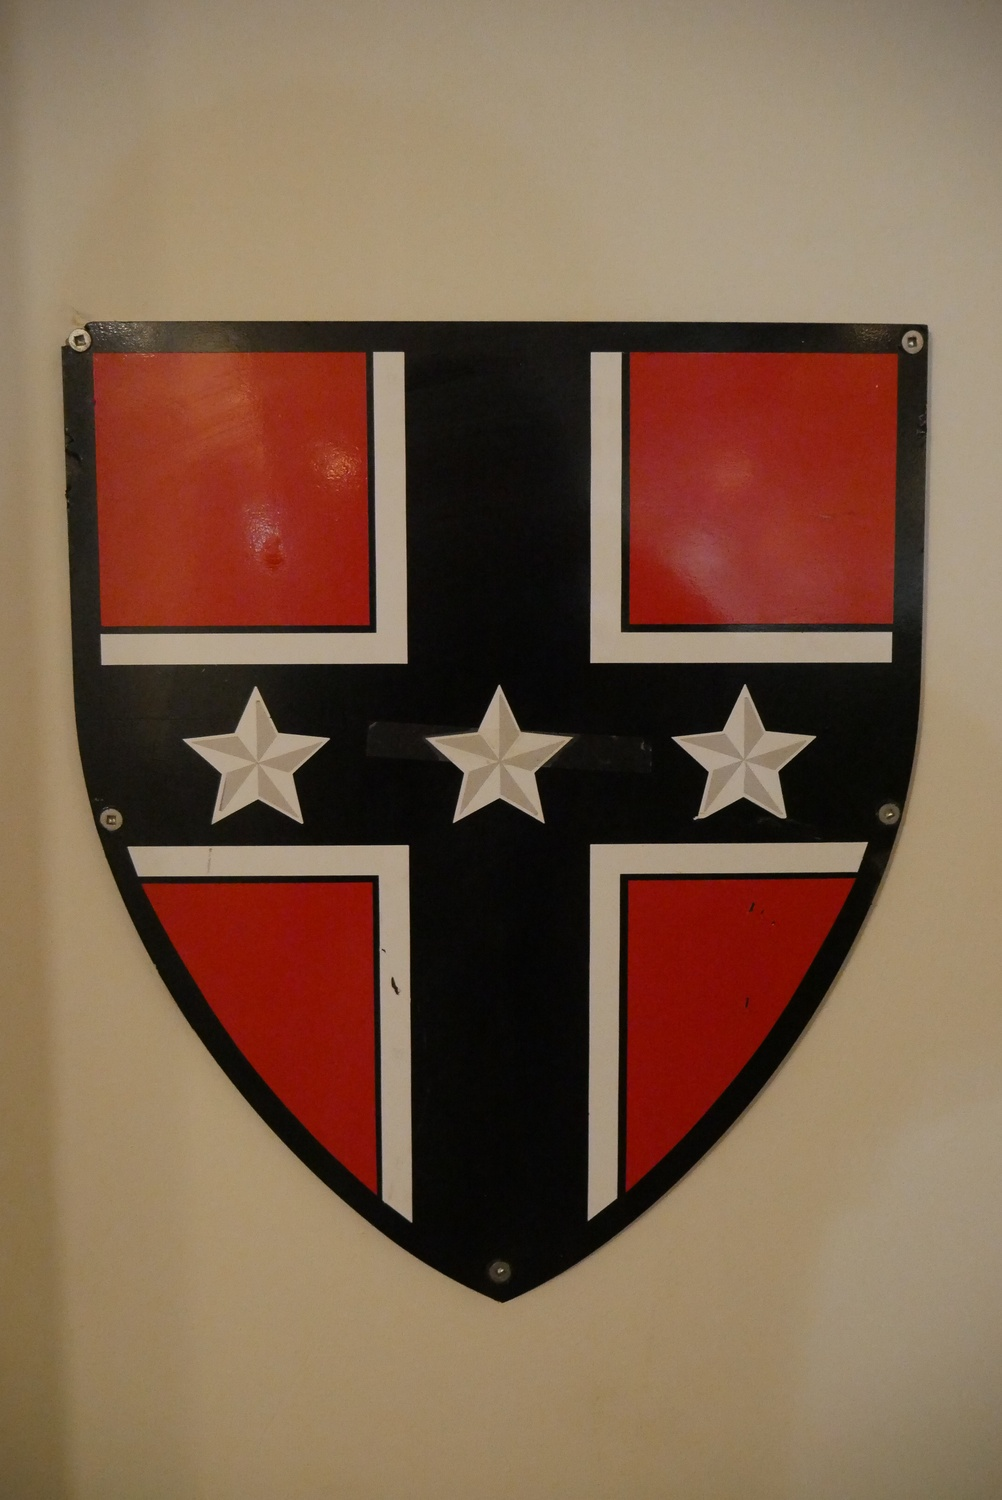 The Kirkland Shield